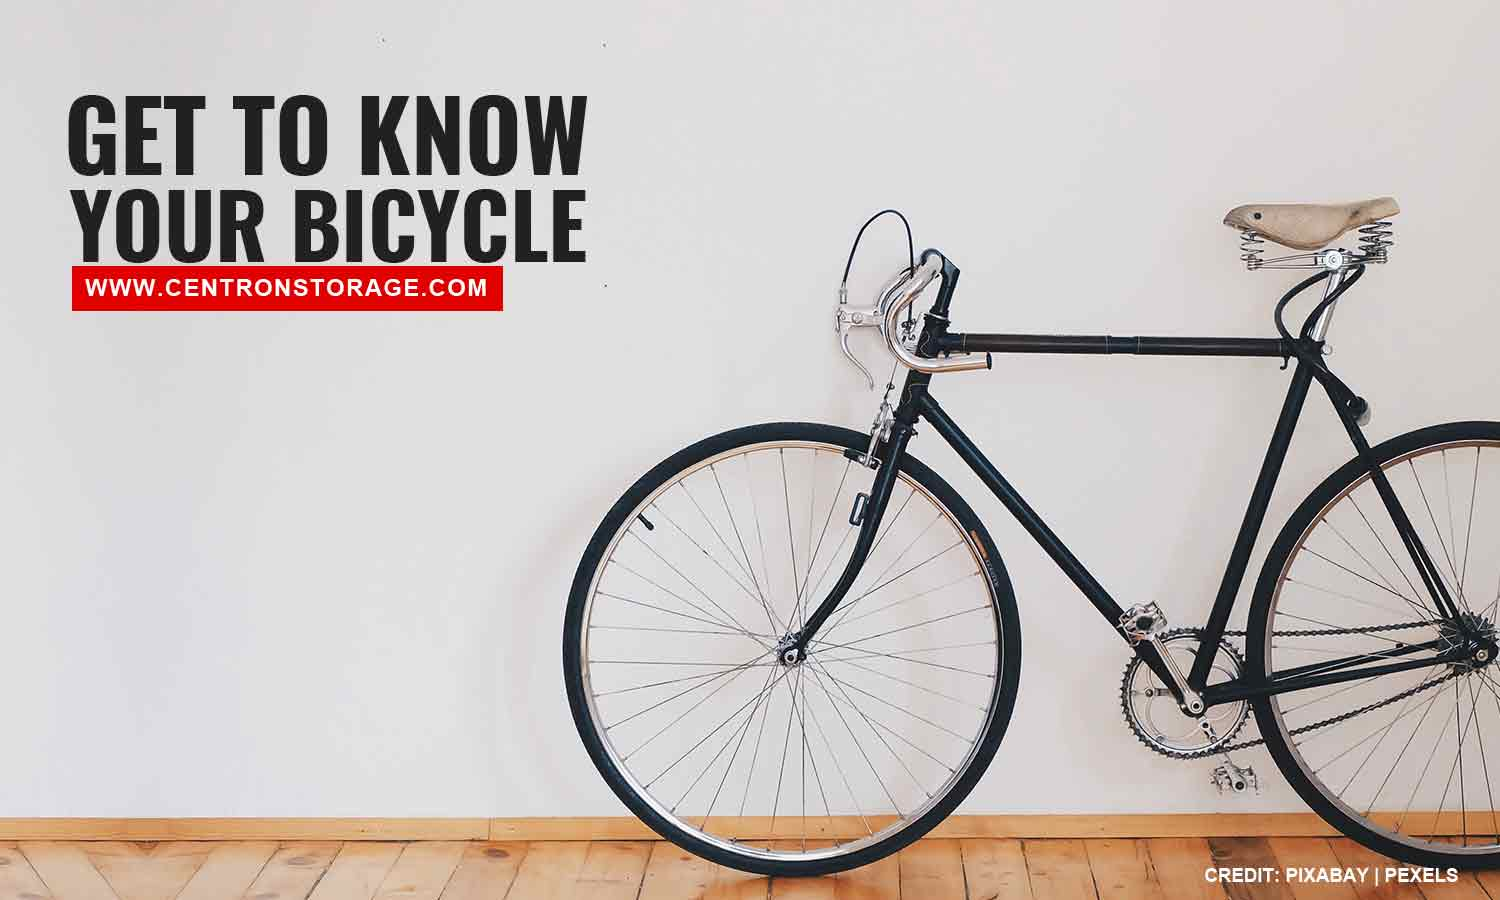 Get to know your bicycle